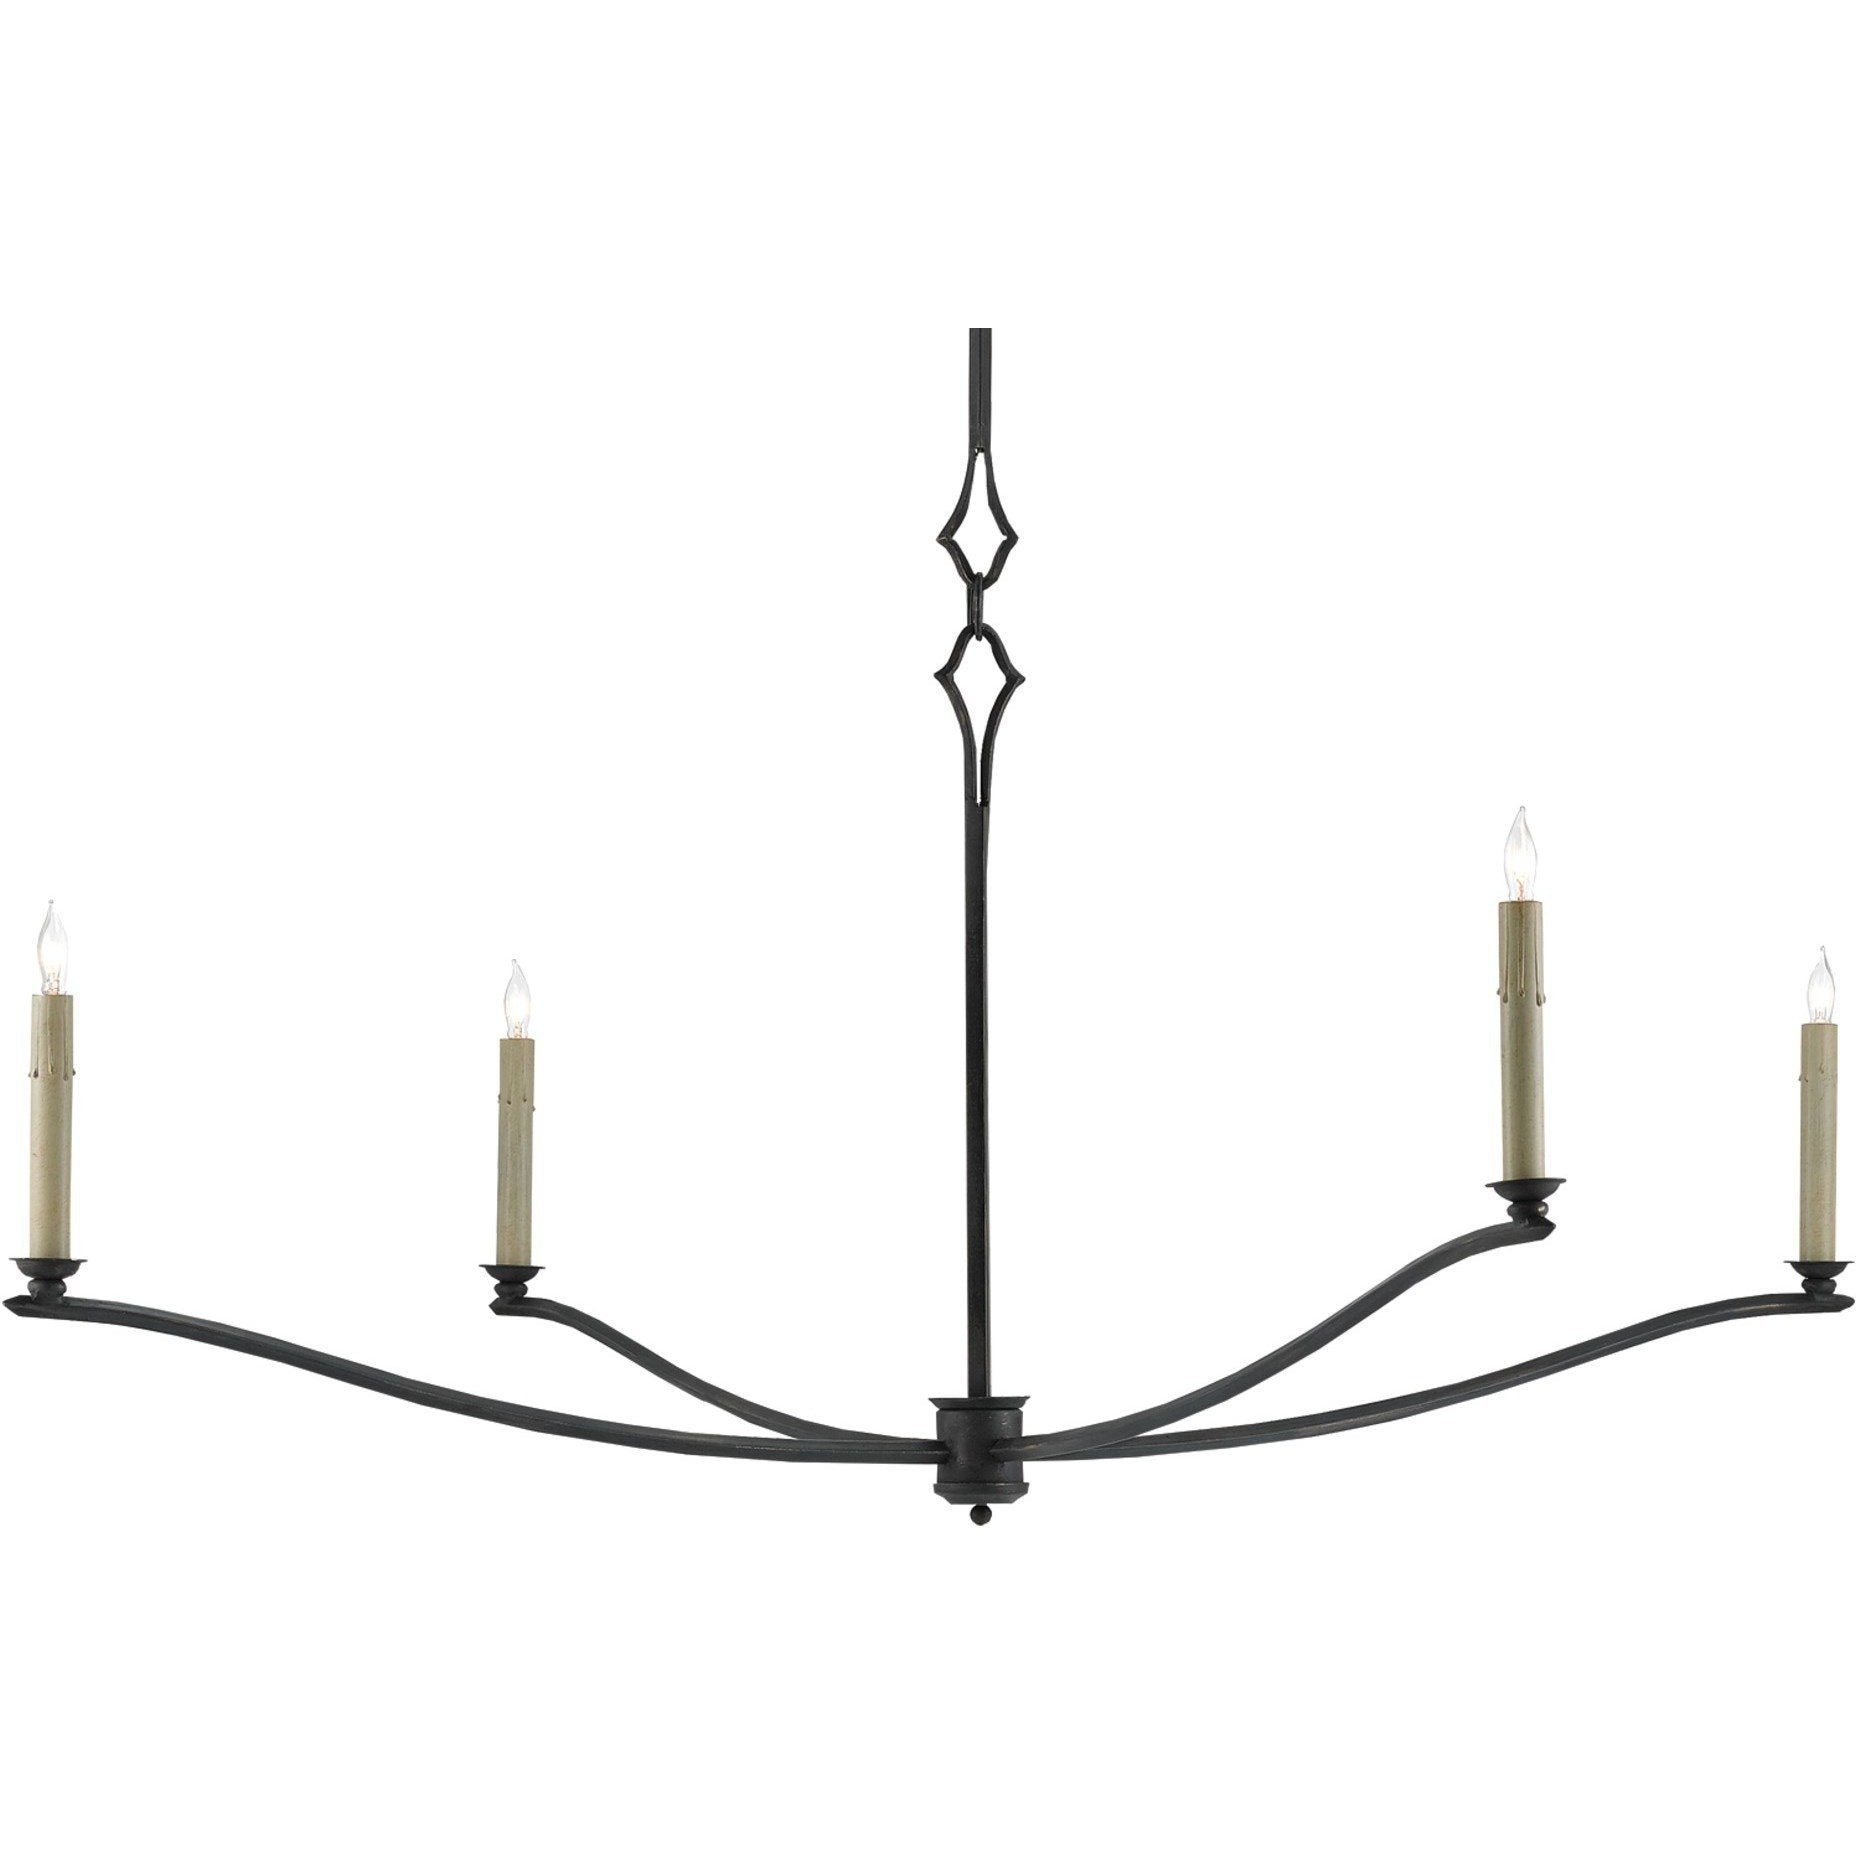 Currey and Company Knole Chandelier 9000-0176 - LOVECUP